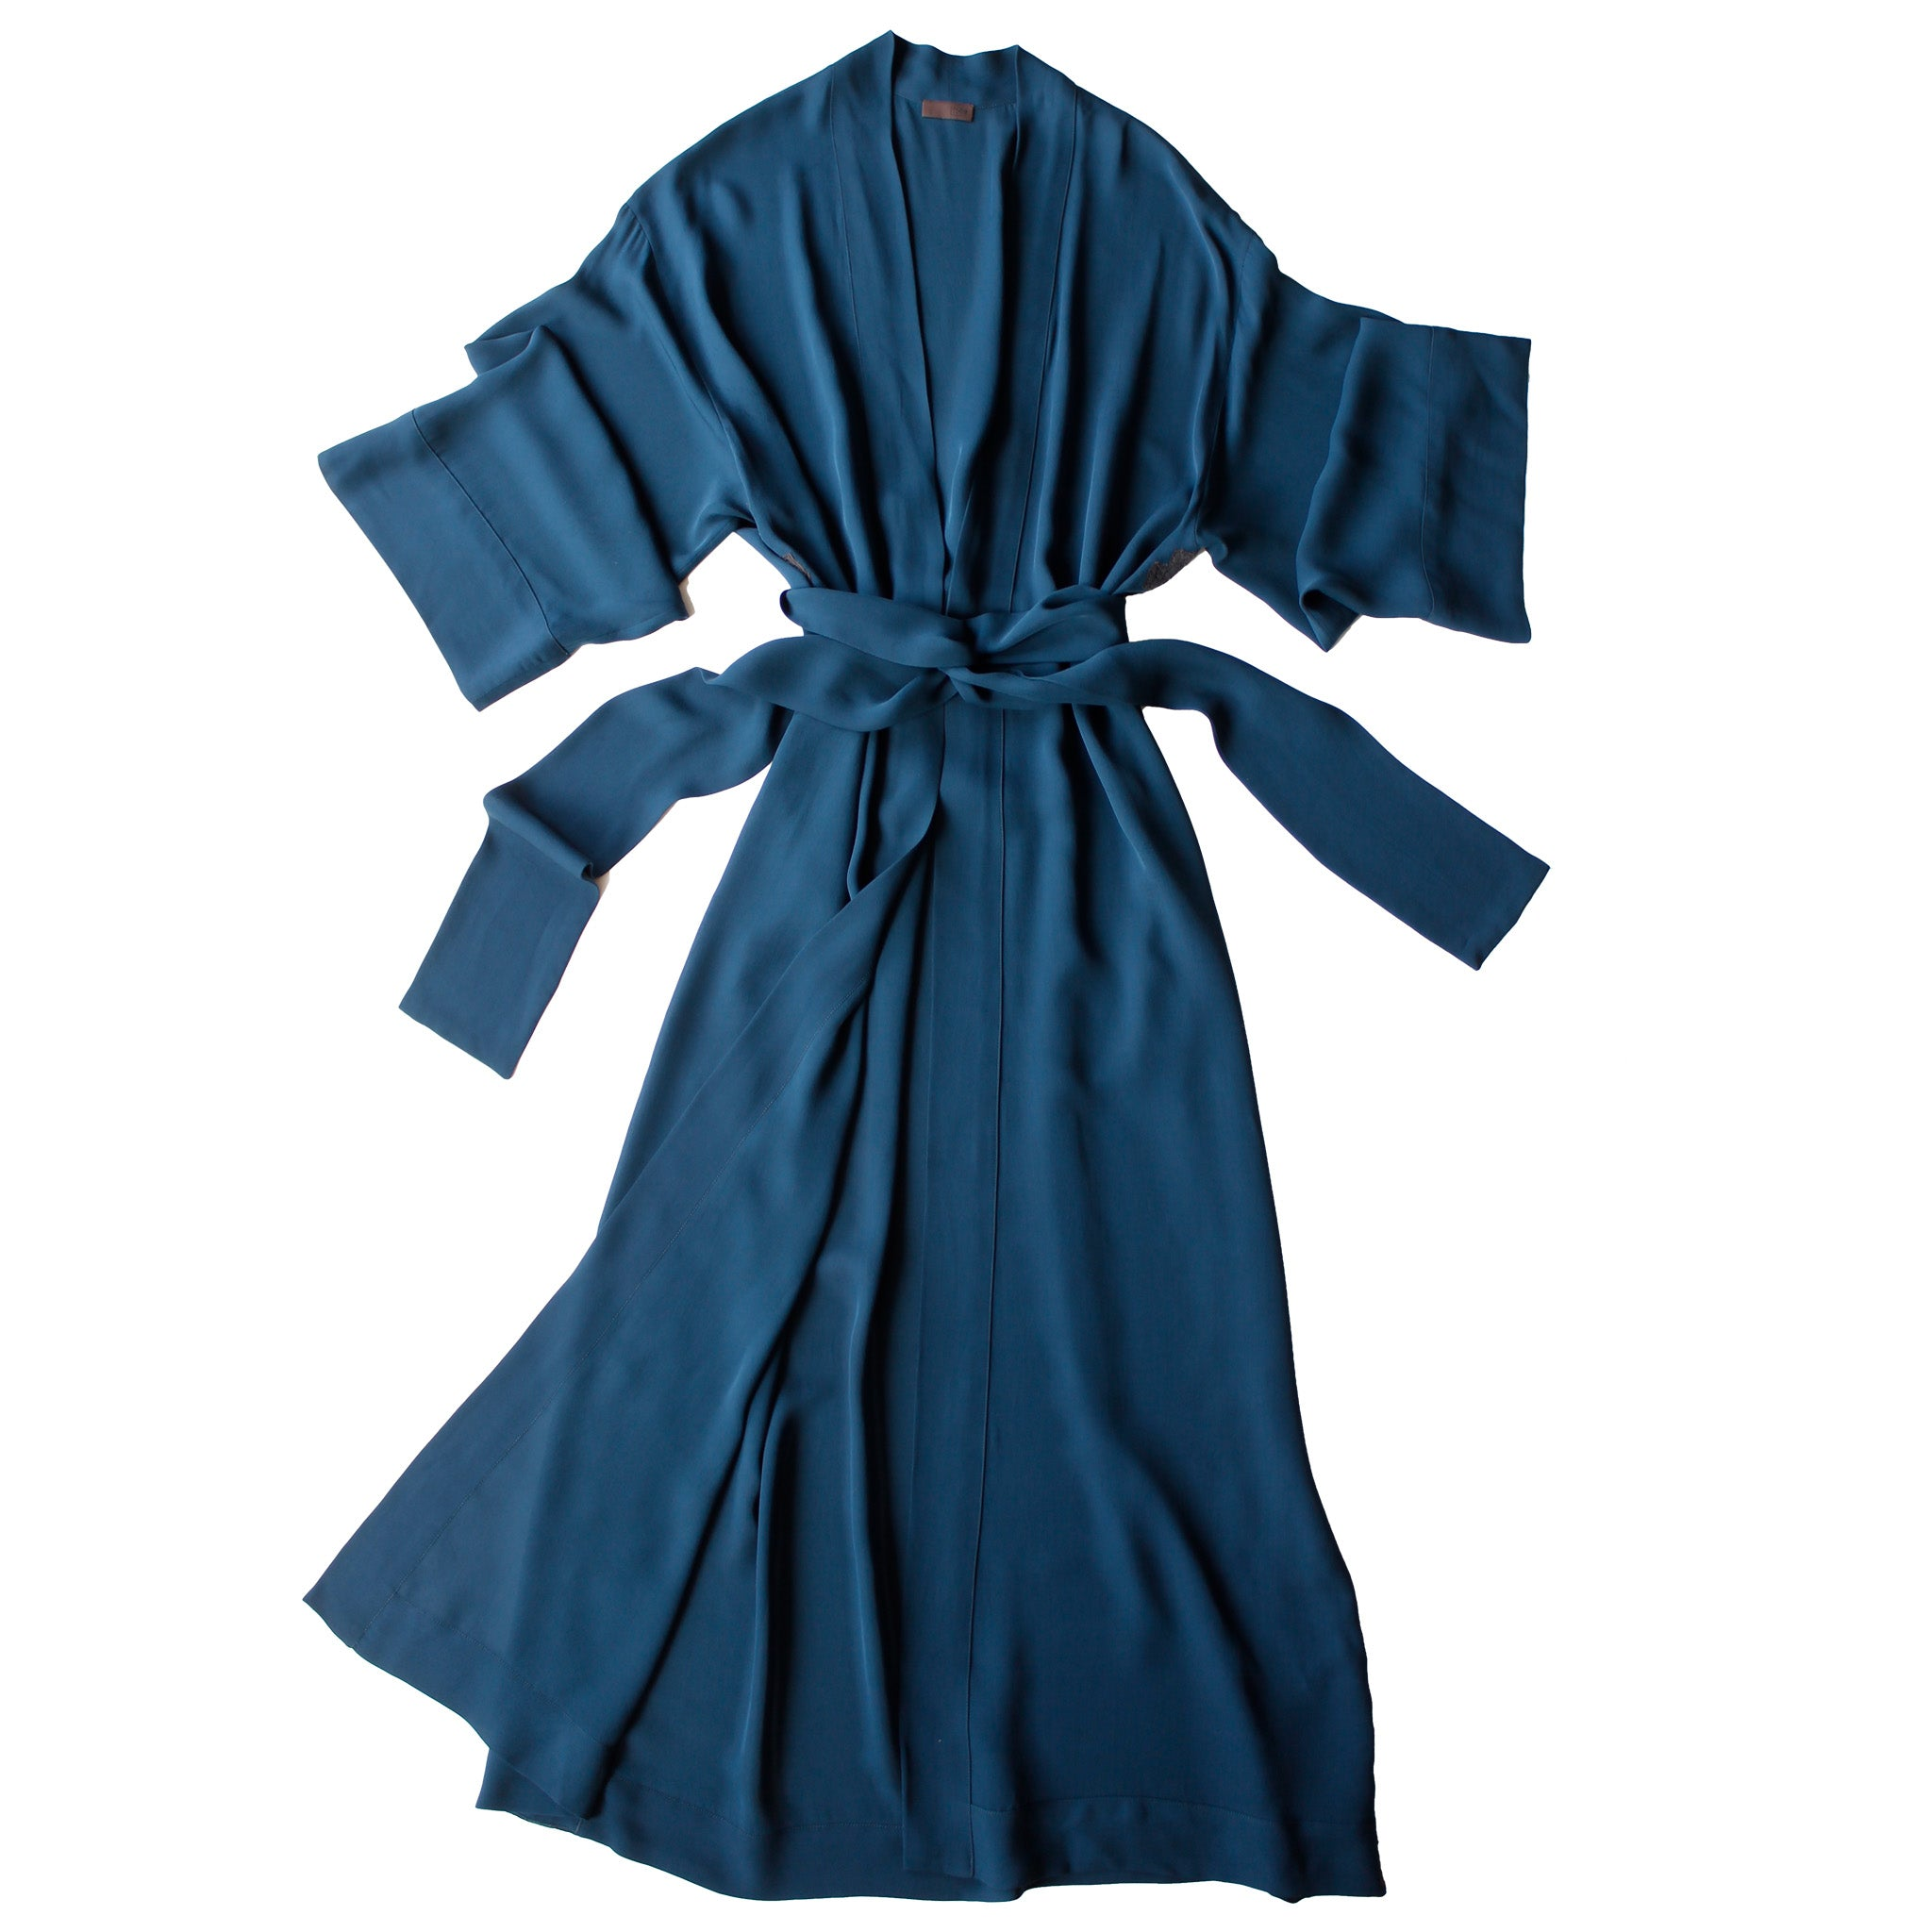 Asteria Kimono Robe in Peacock Silk Double Georgette